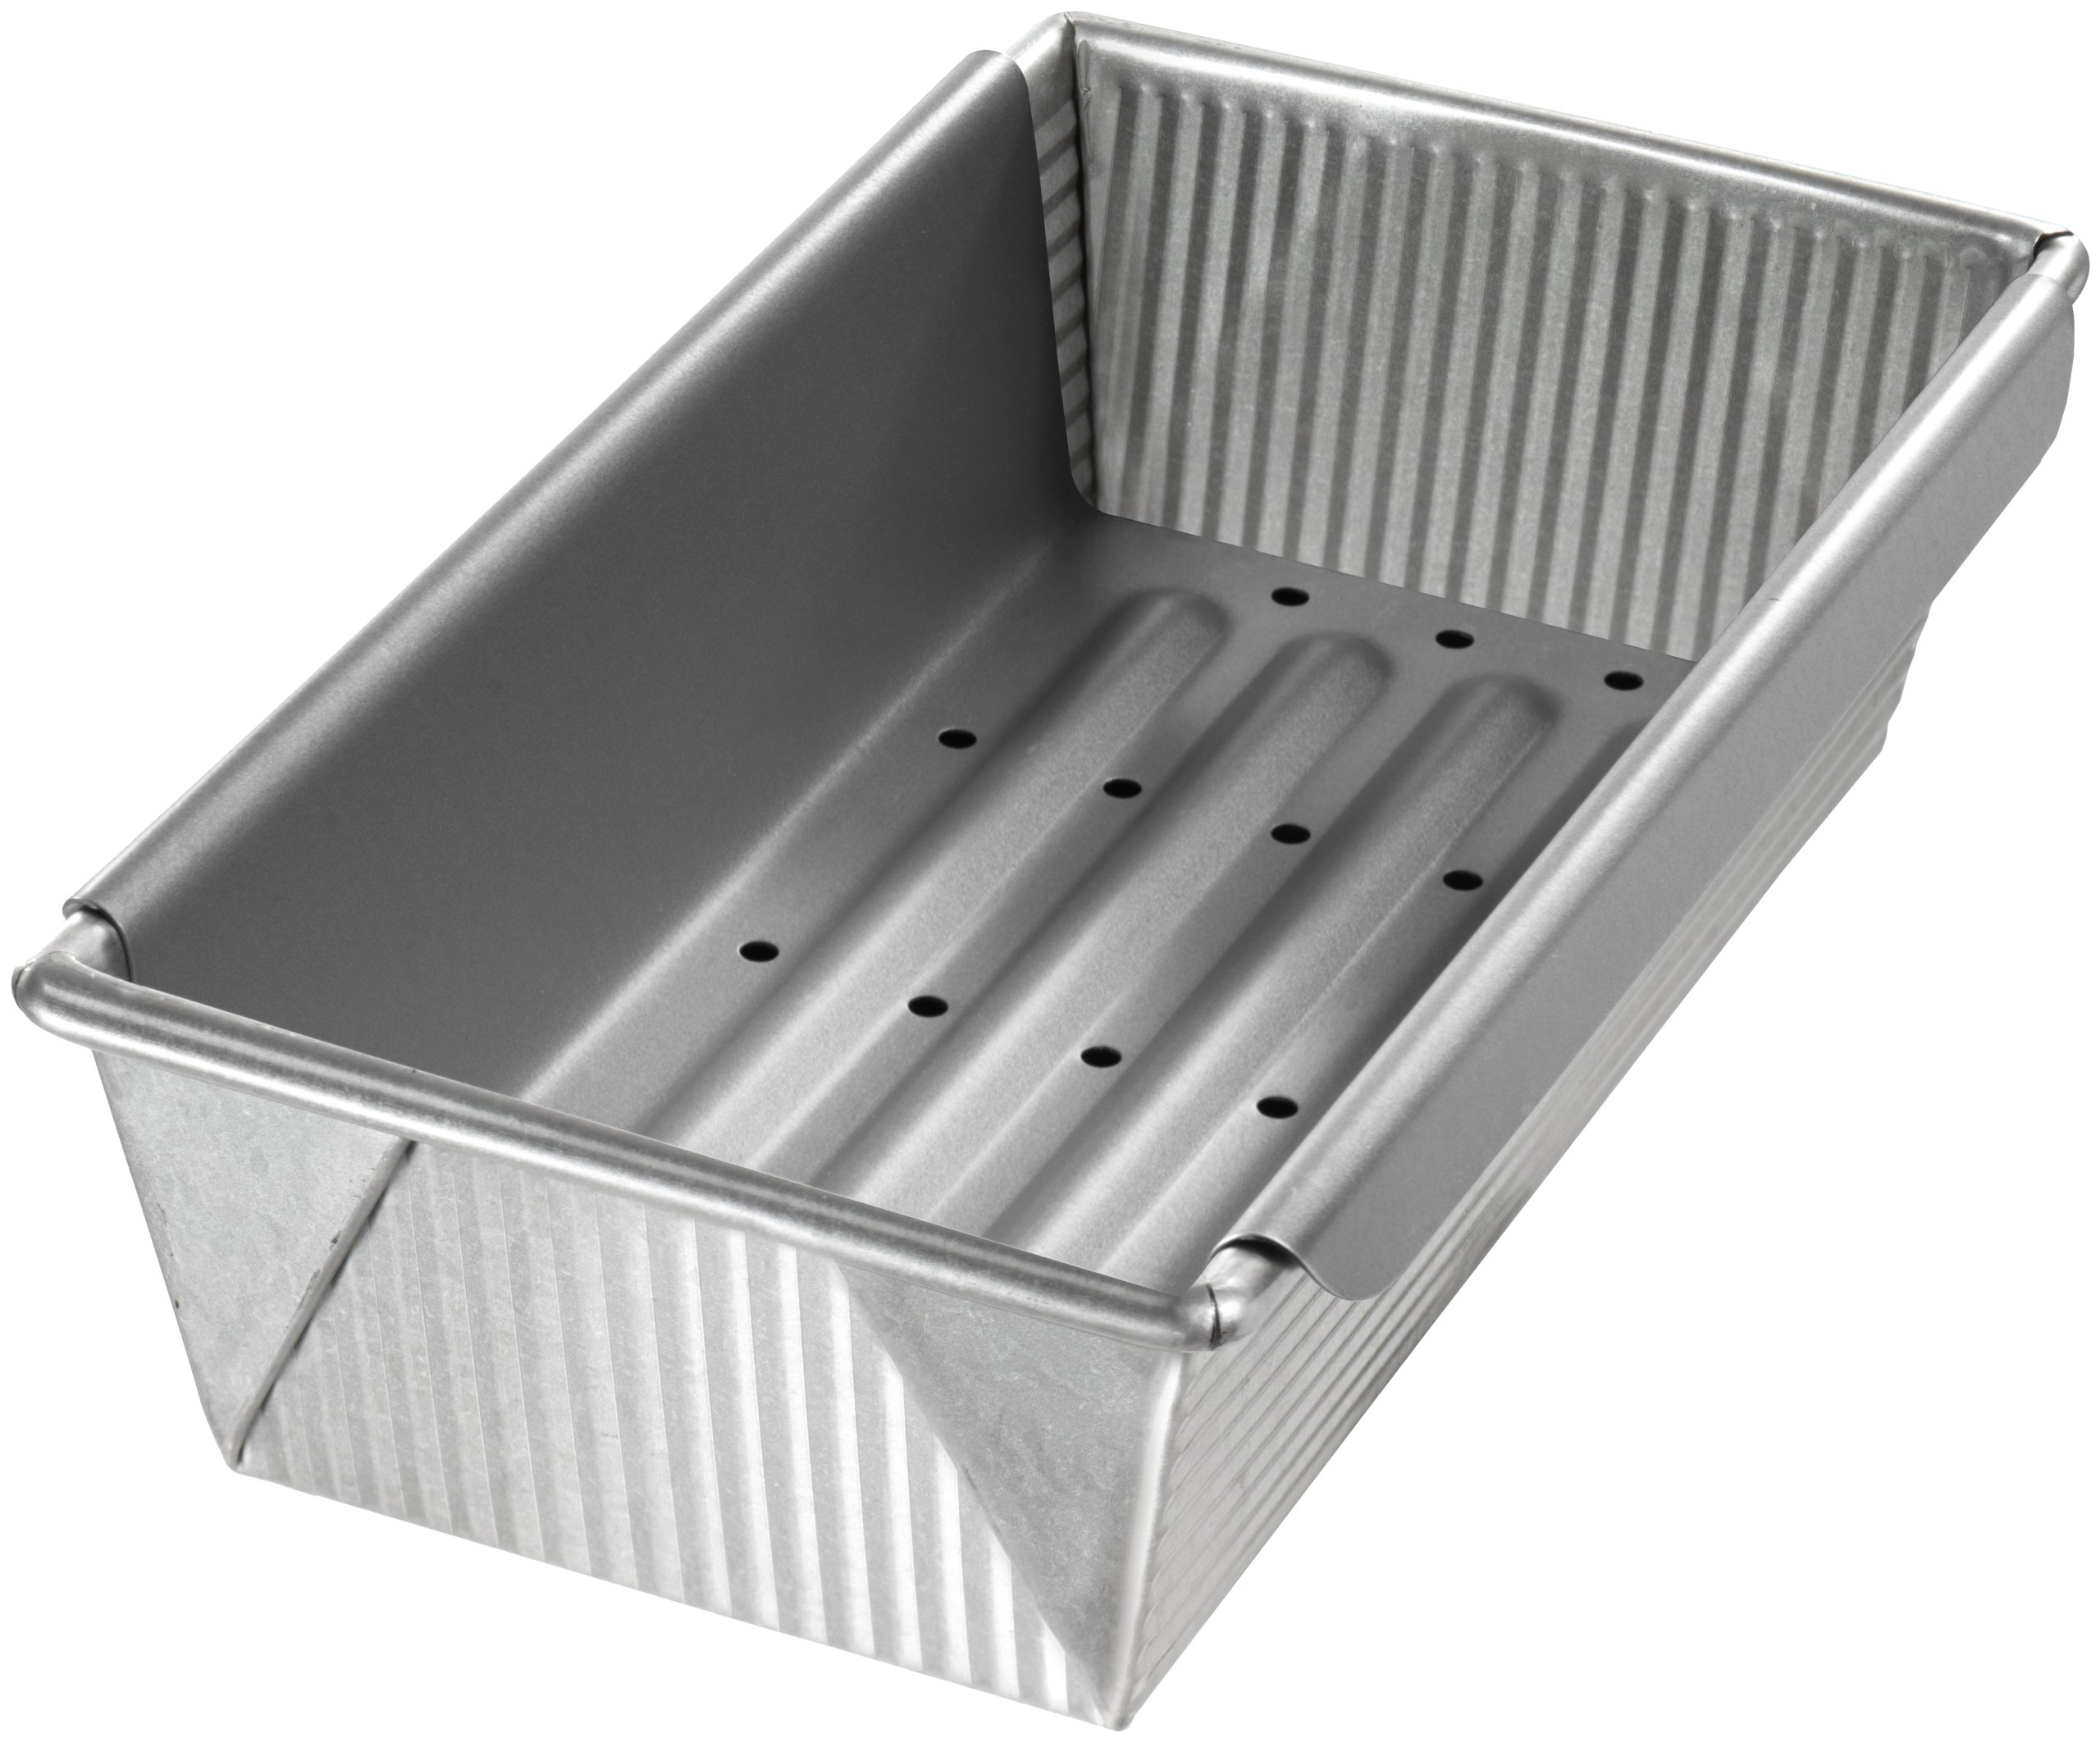 USA Pan Bakeware Aluminized Steel Meat Loaf Pan with Insert by USA Pan